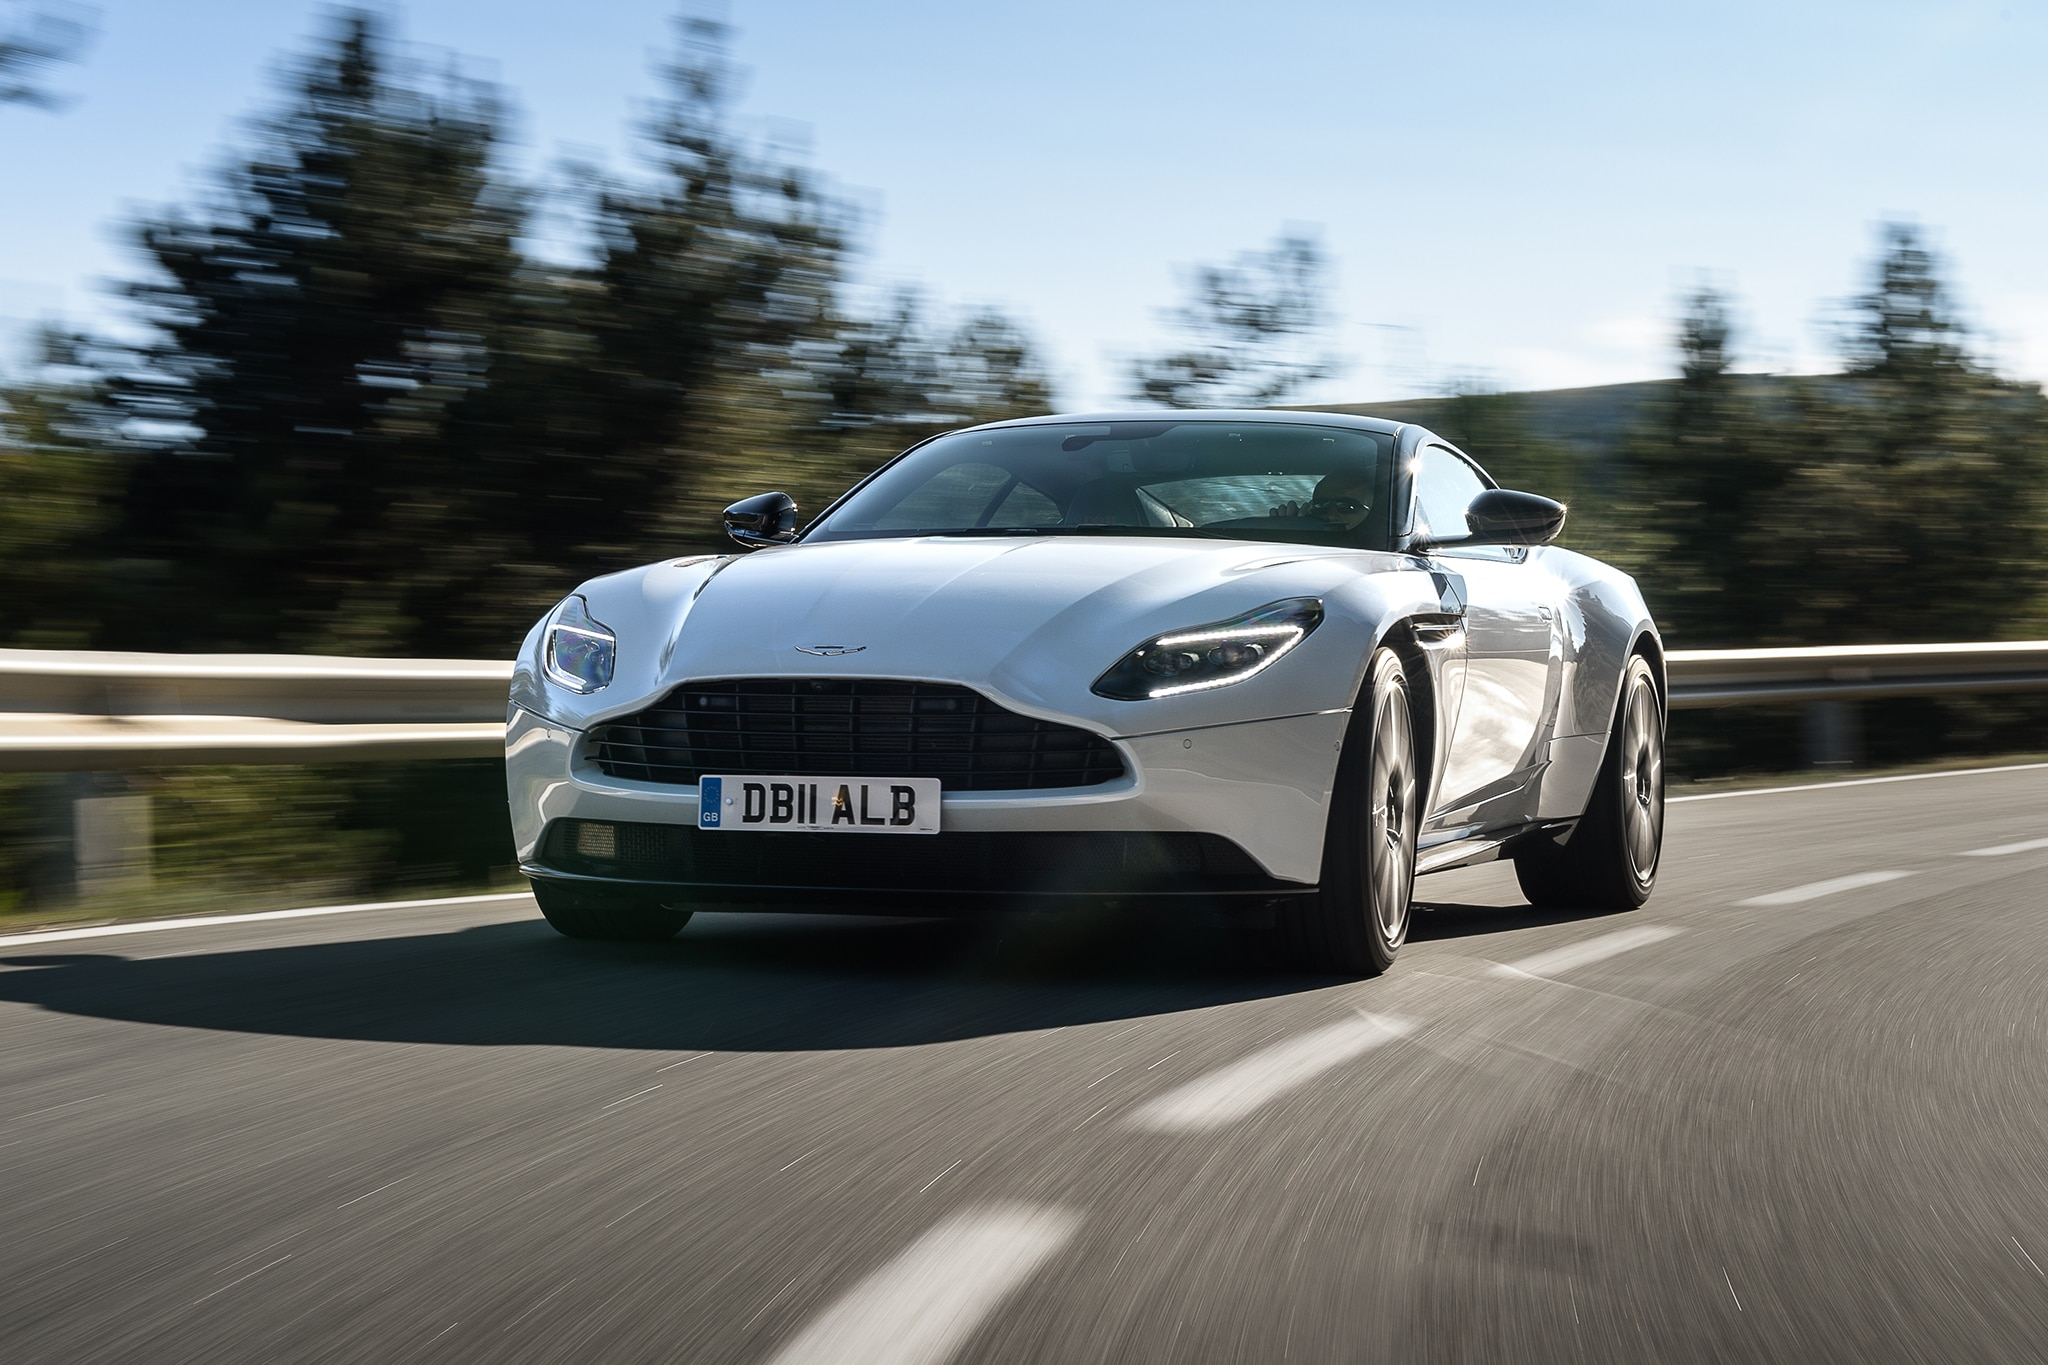 2018 Aston Martin DB11 Front View In Motion 04